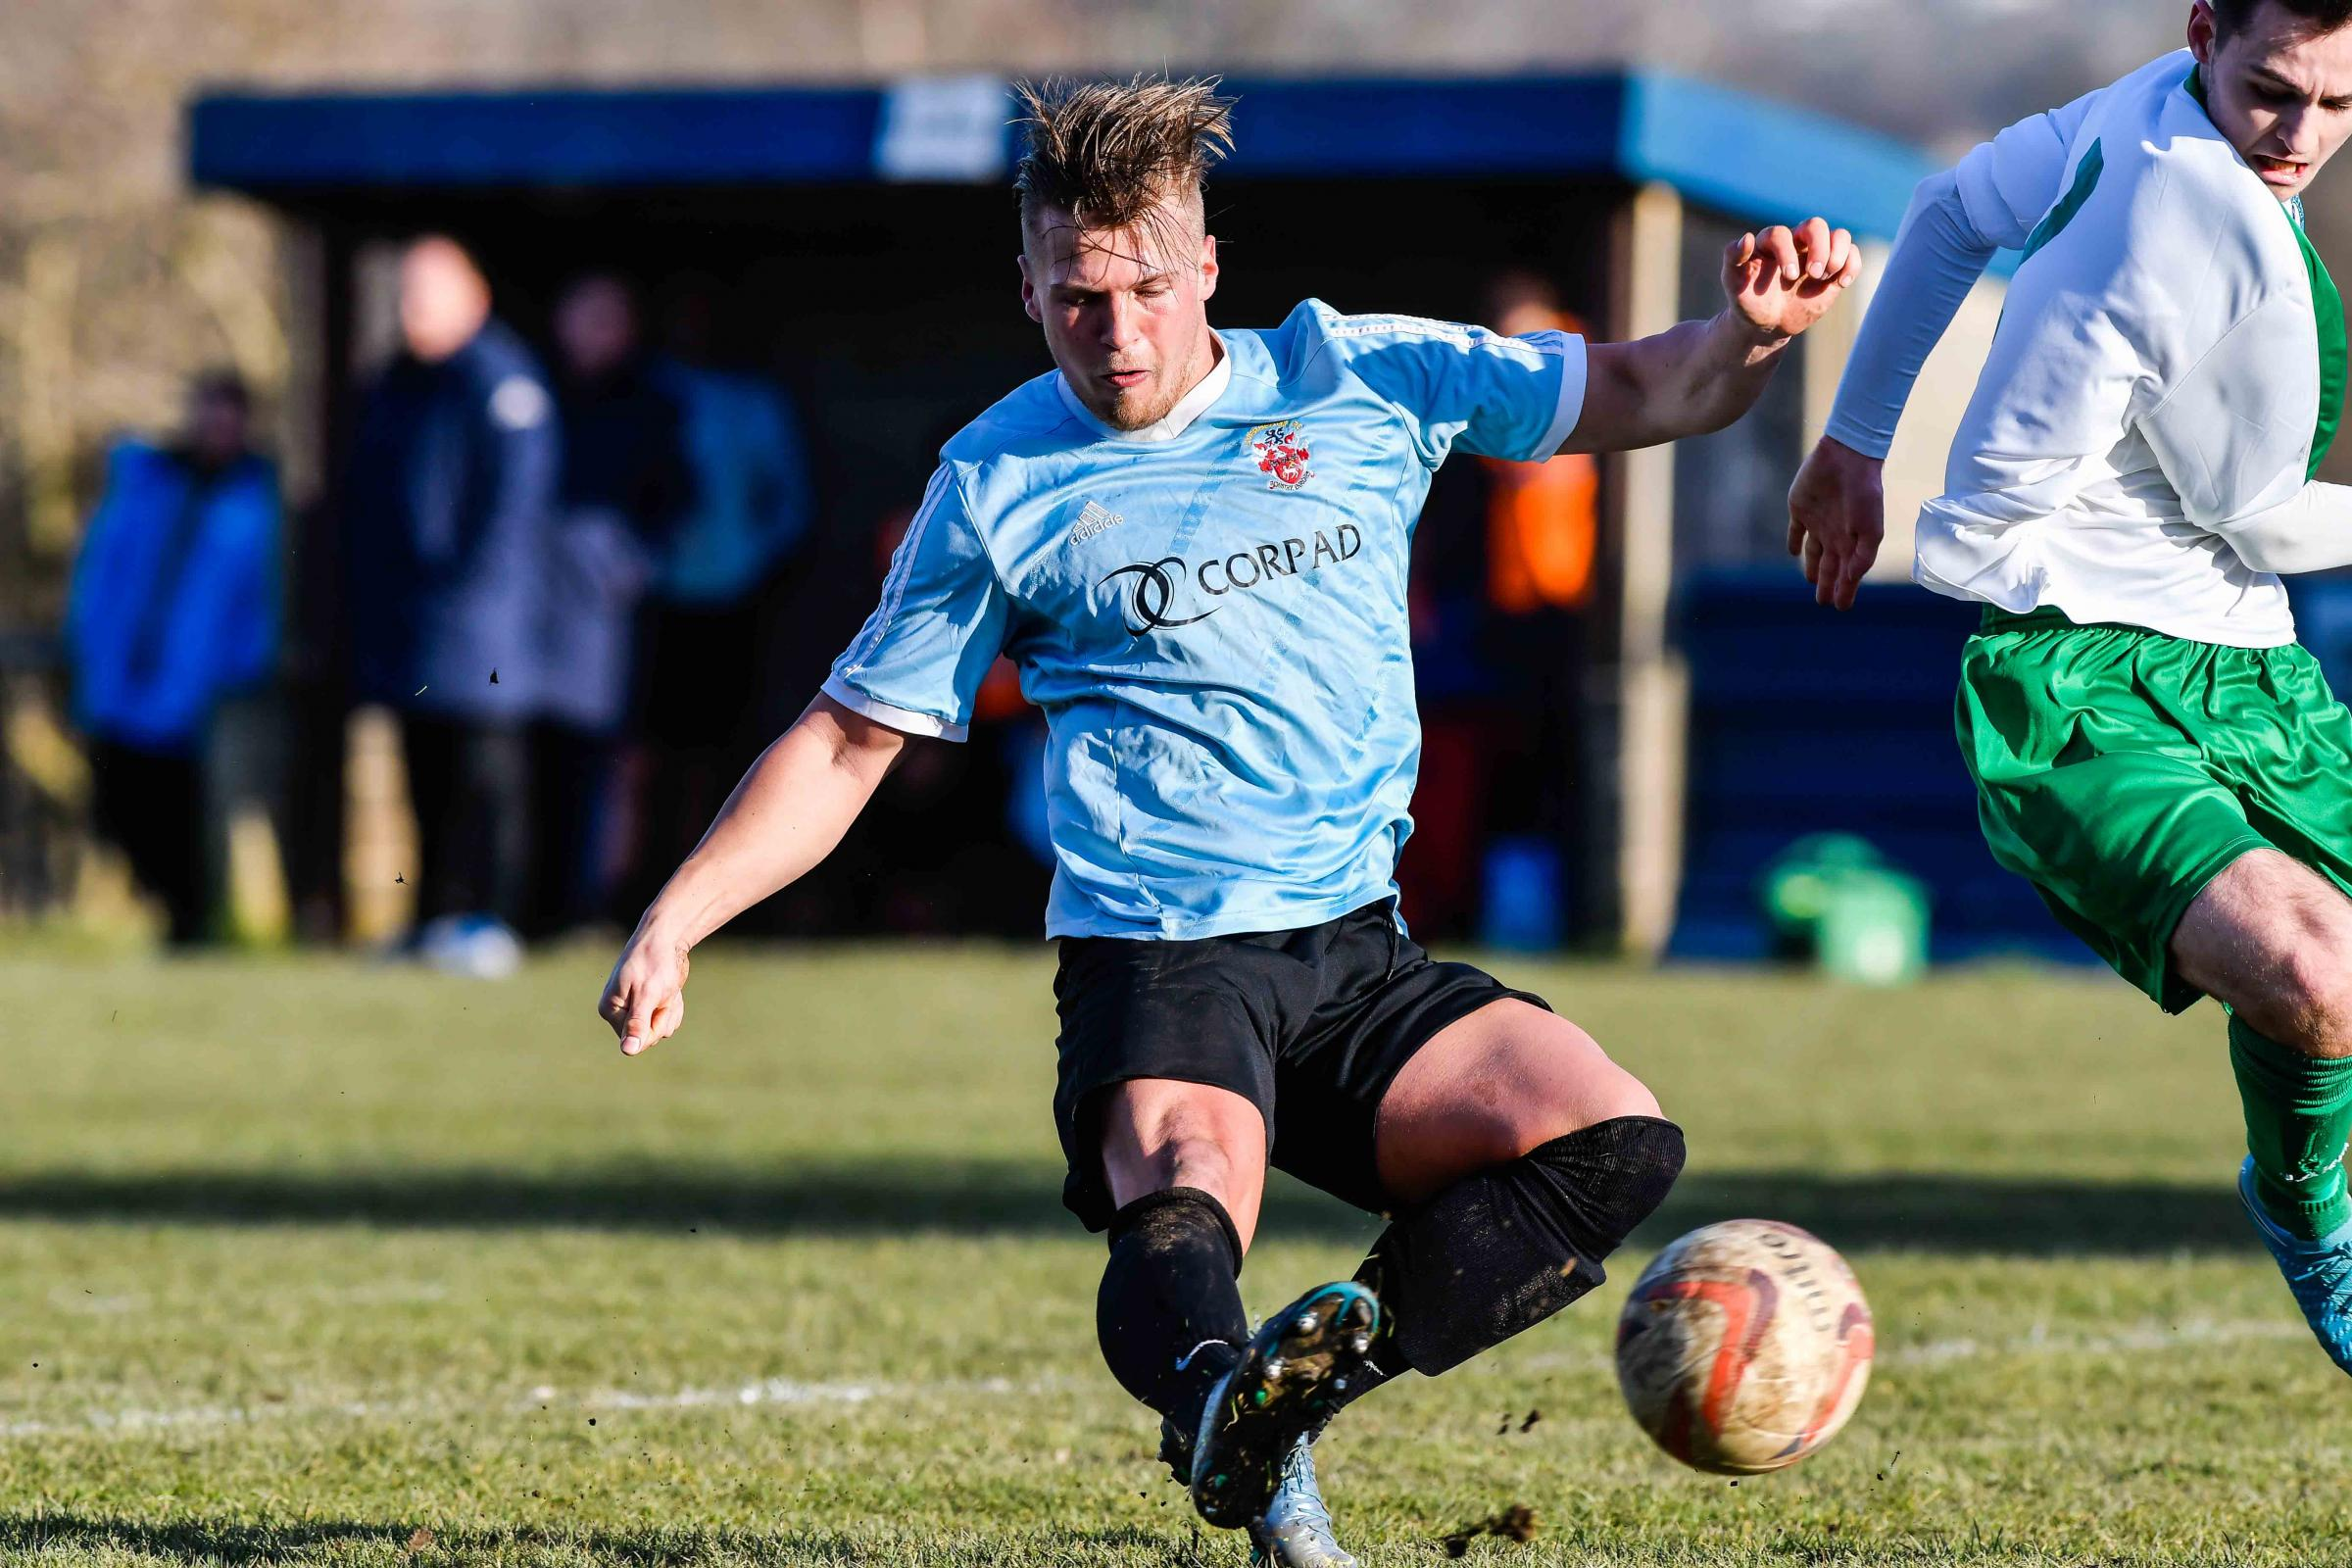 Rhys Davies was a late arrival for Liversedge through no fault of his own